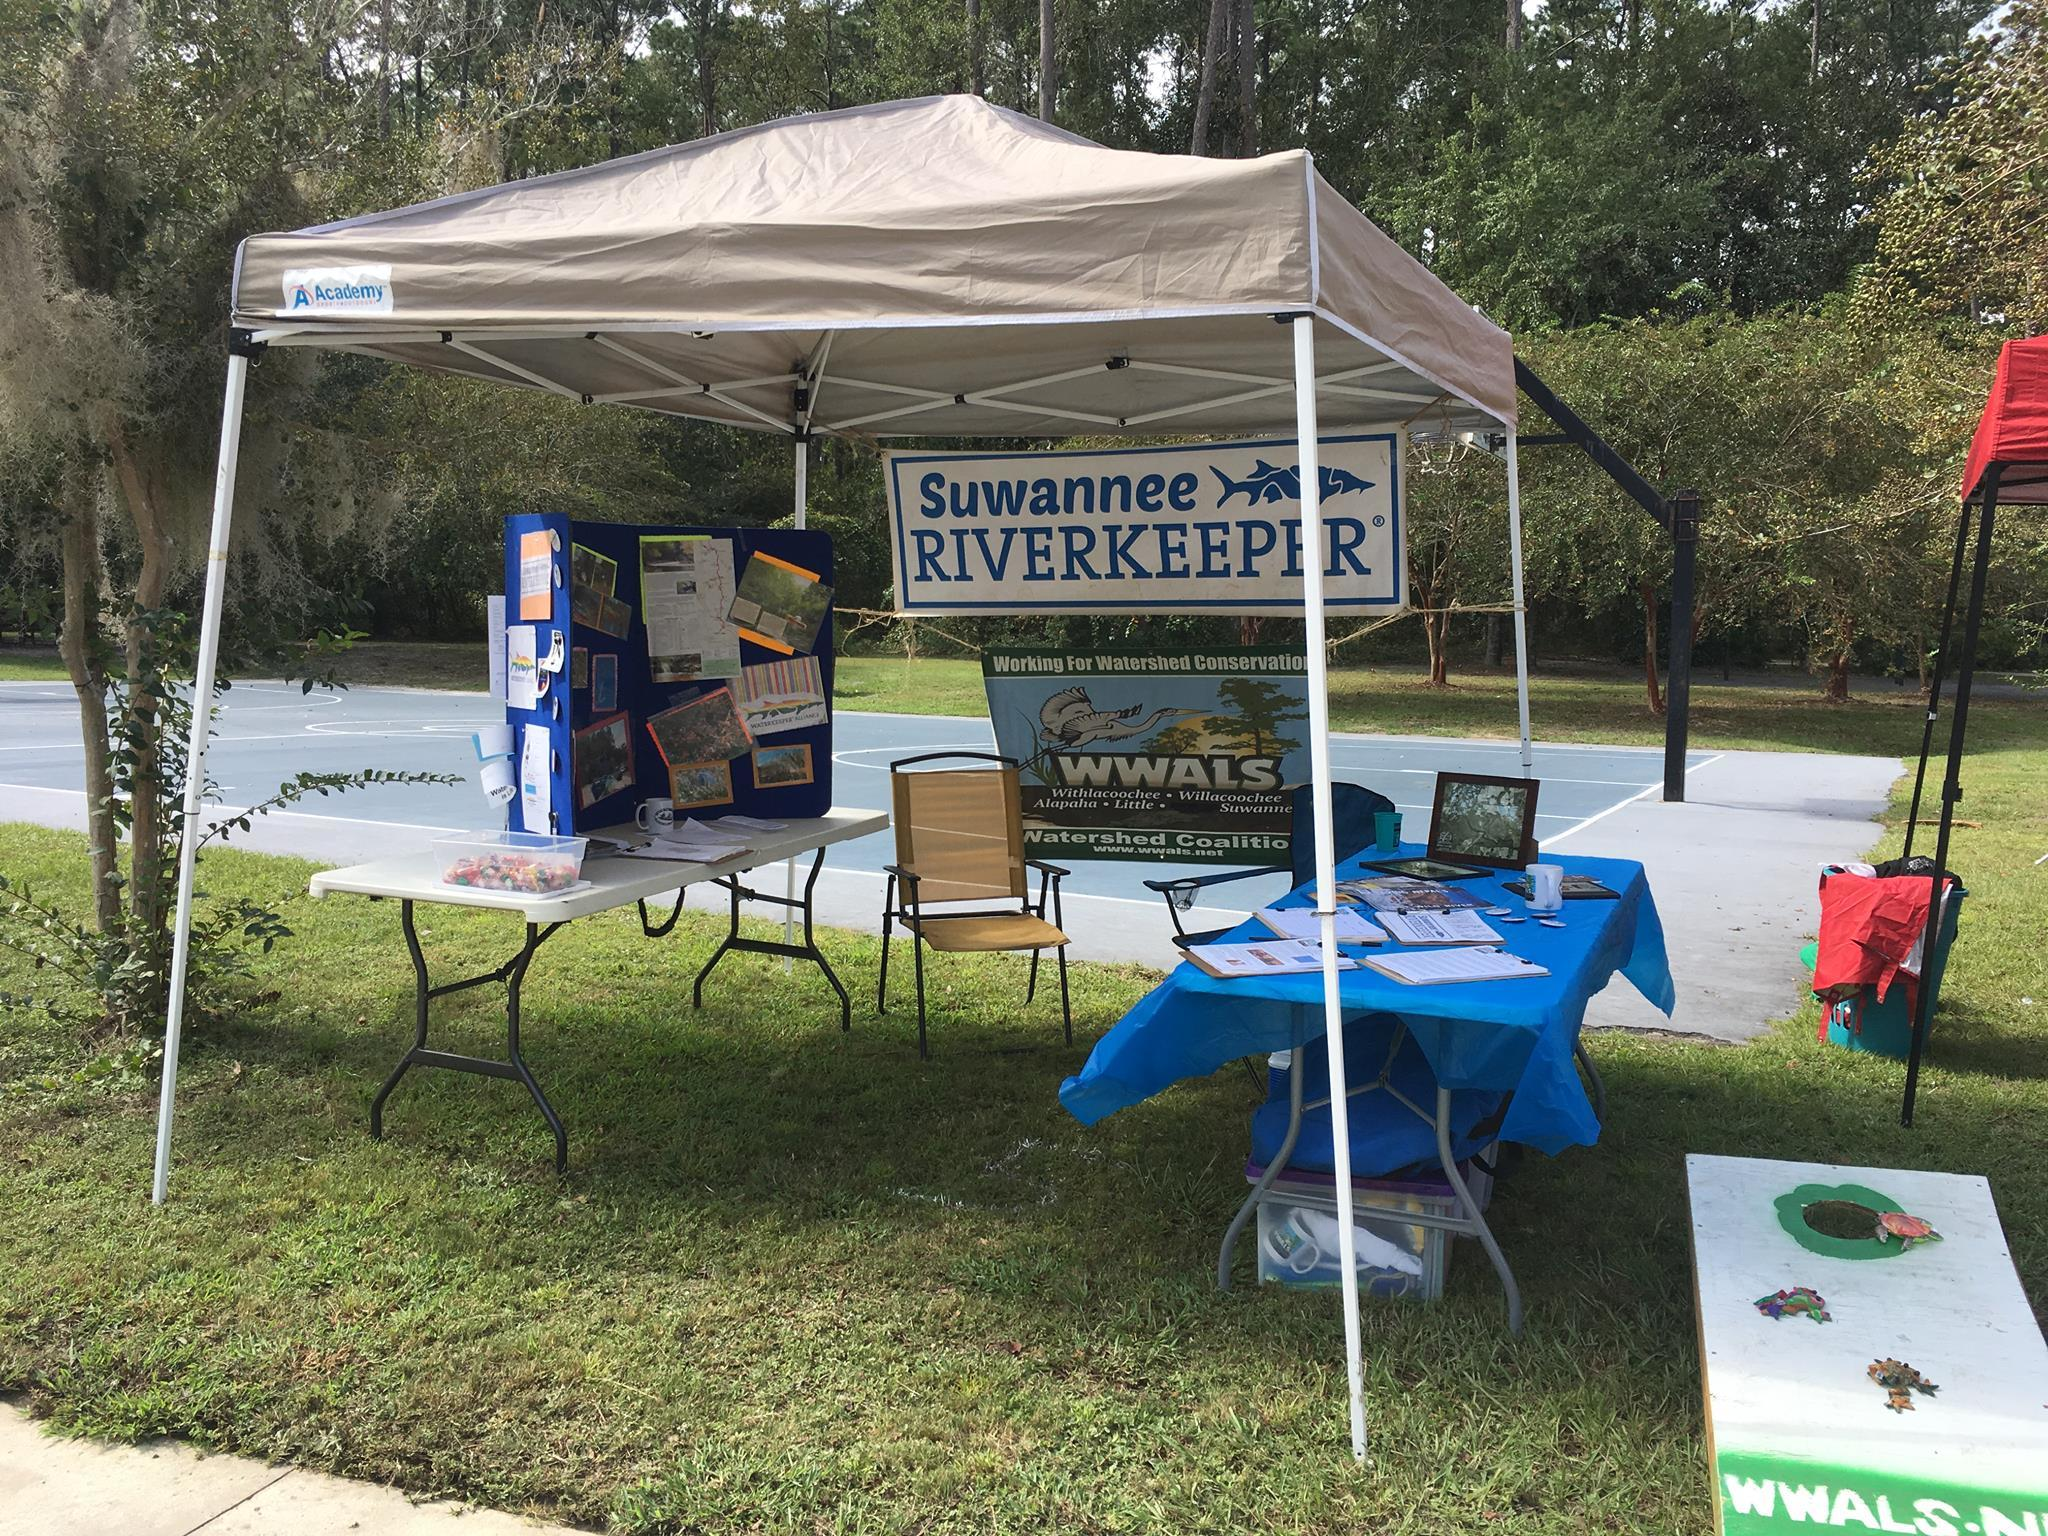 2048x1536 Set up and ready to go, 30.828694, -83.30094, Saunders Park, in Pictures: WWALS @ South Georgia Pride, by John S. Quarterman, for WWALS.net, 16 September 2017